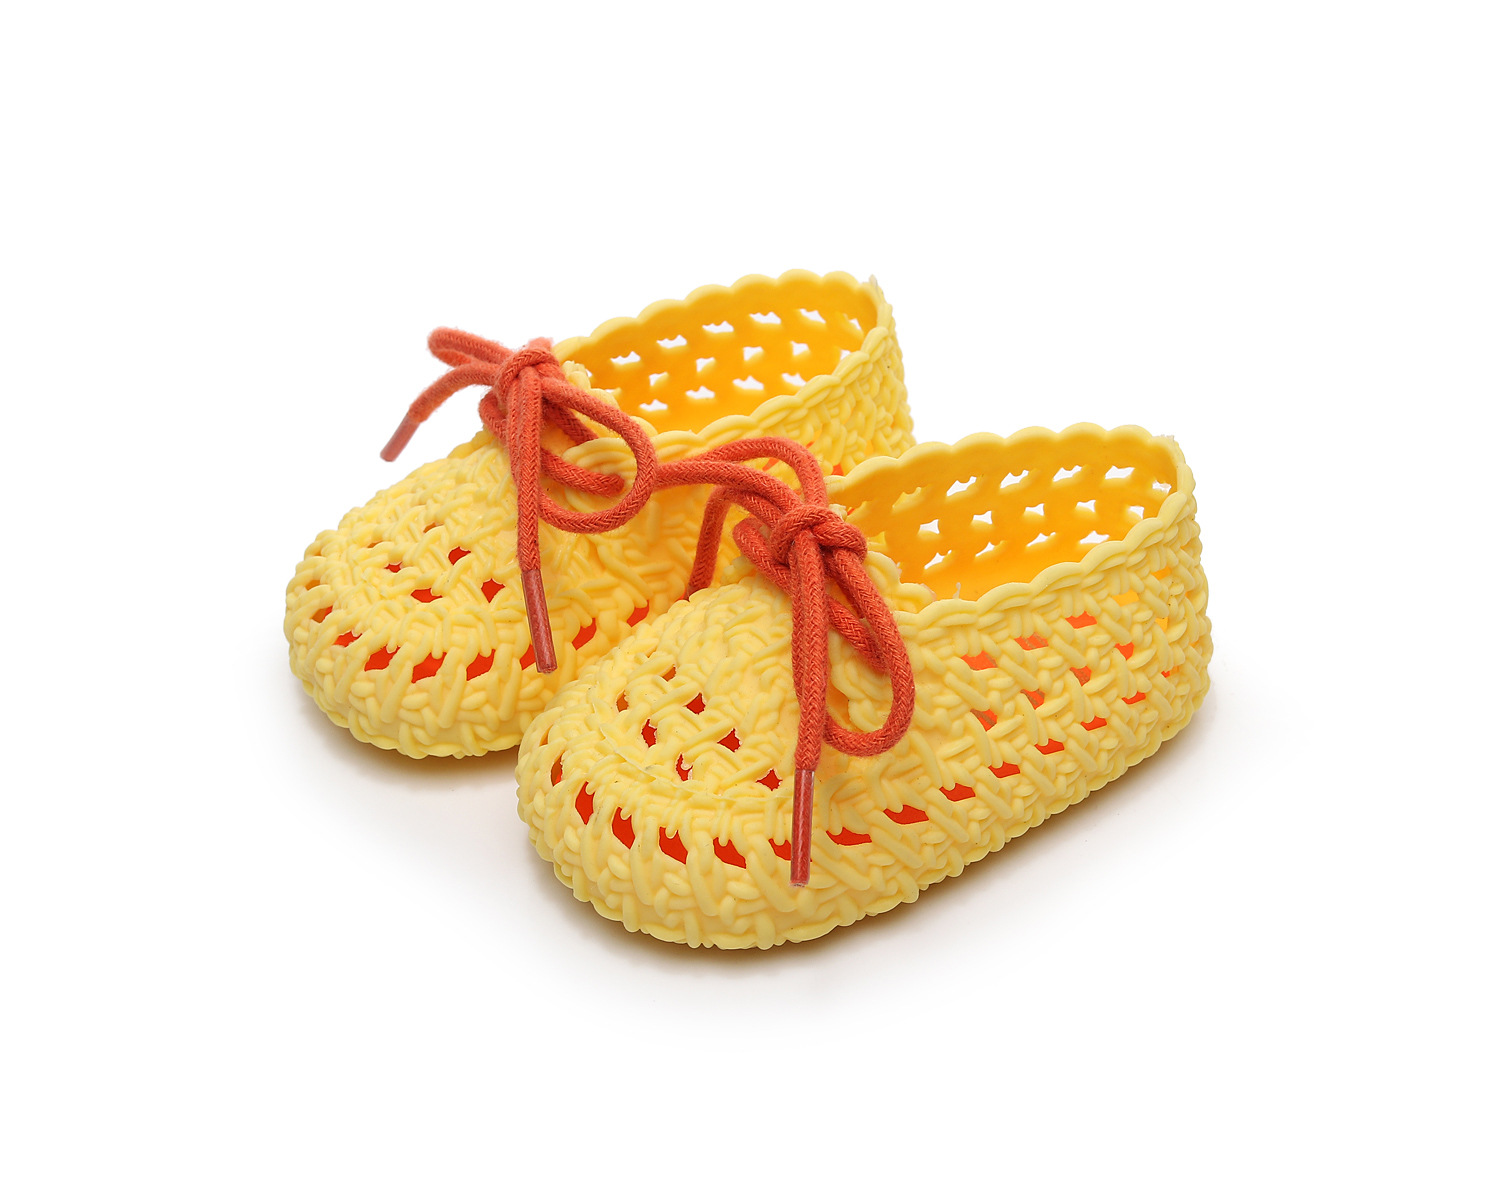 Heelys Childrens Shoes Mini Melissa Baby Summer Baby Shoes 0 - 1 - 2 Year Old Baby Soft Sole Toddler Shoes Baby